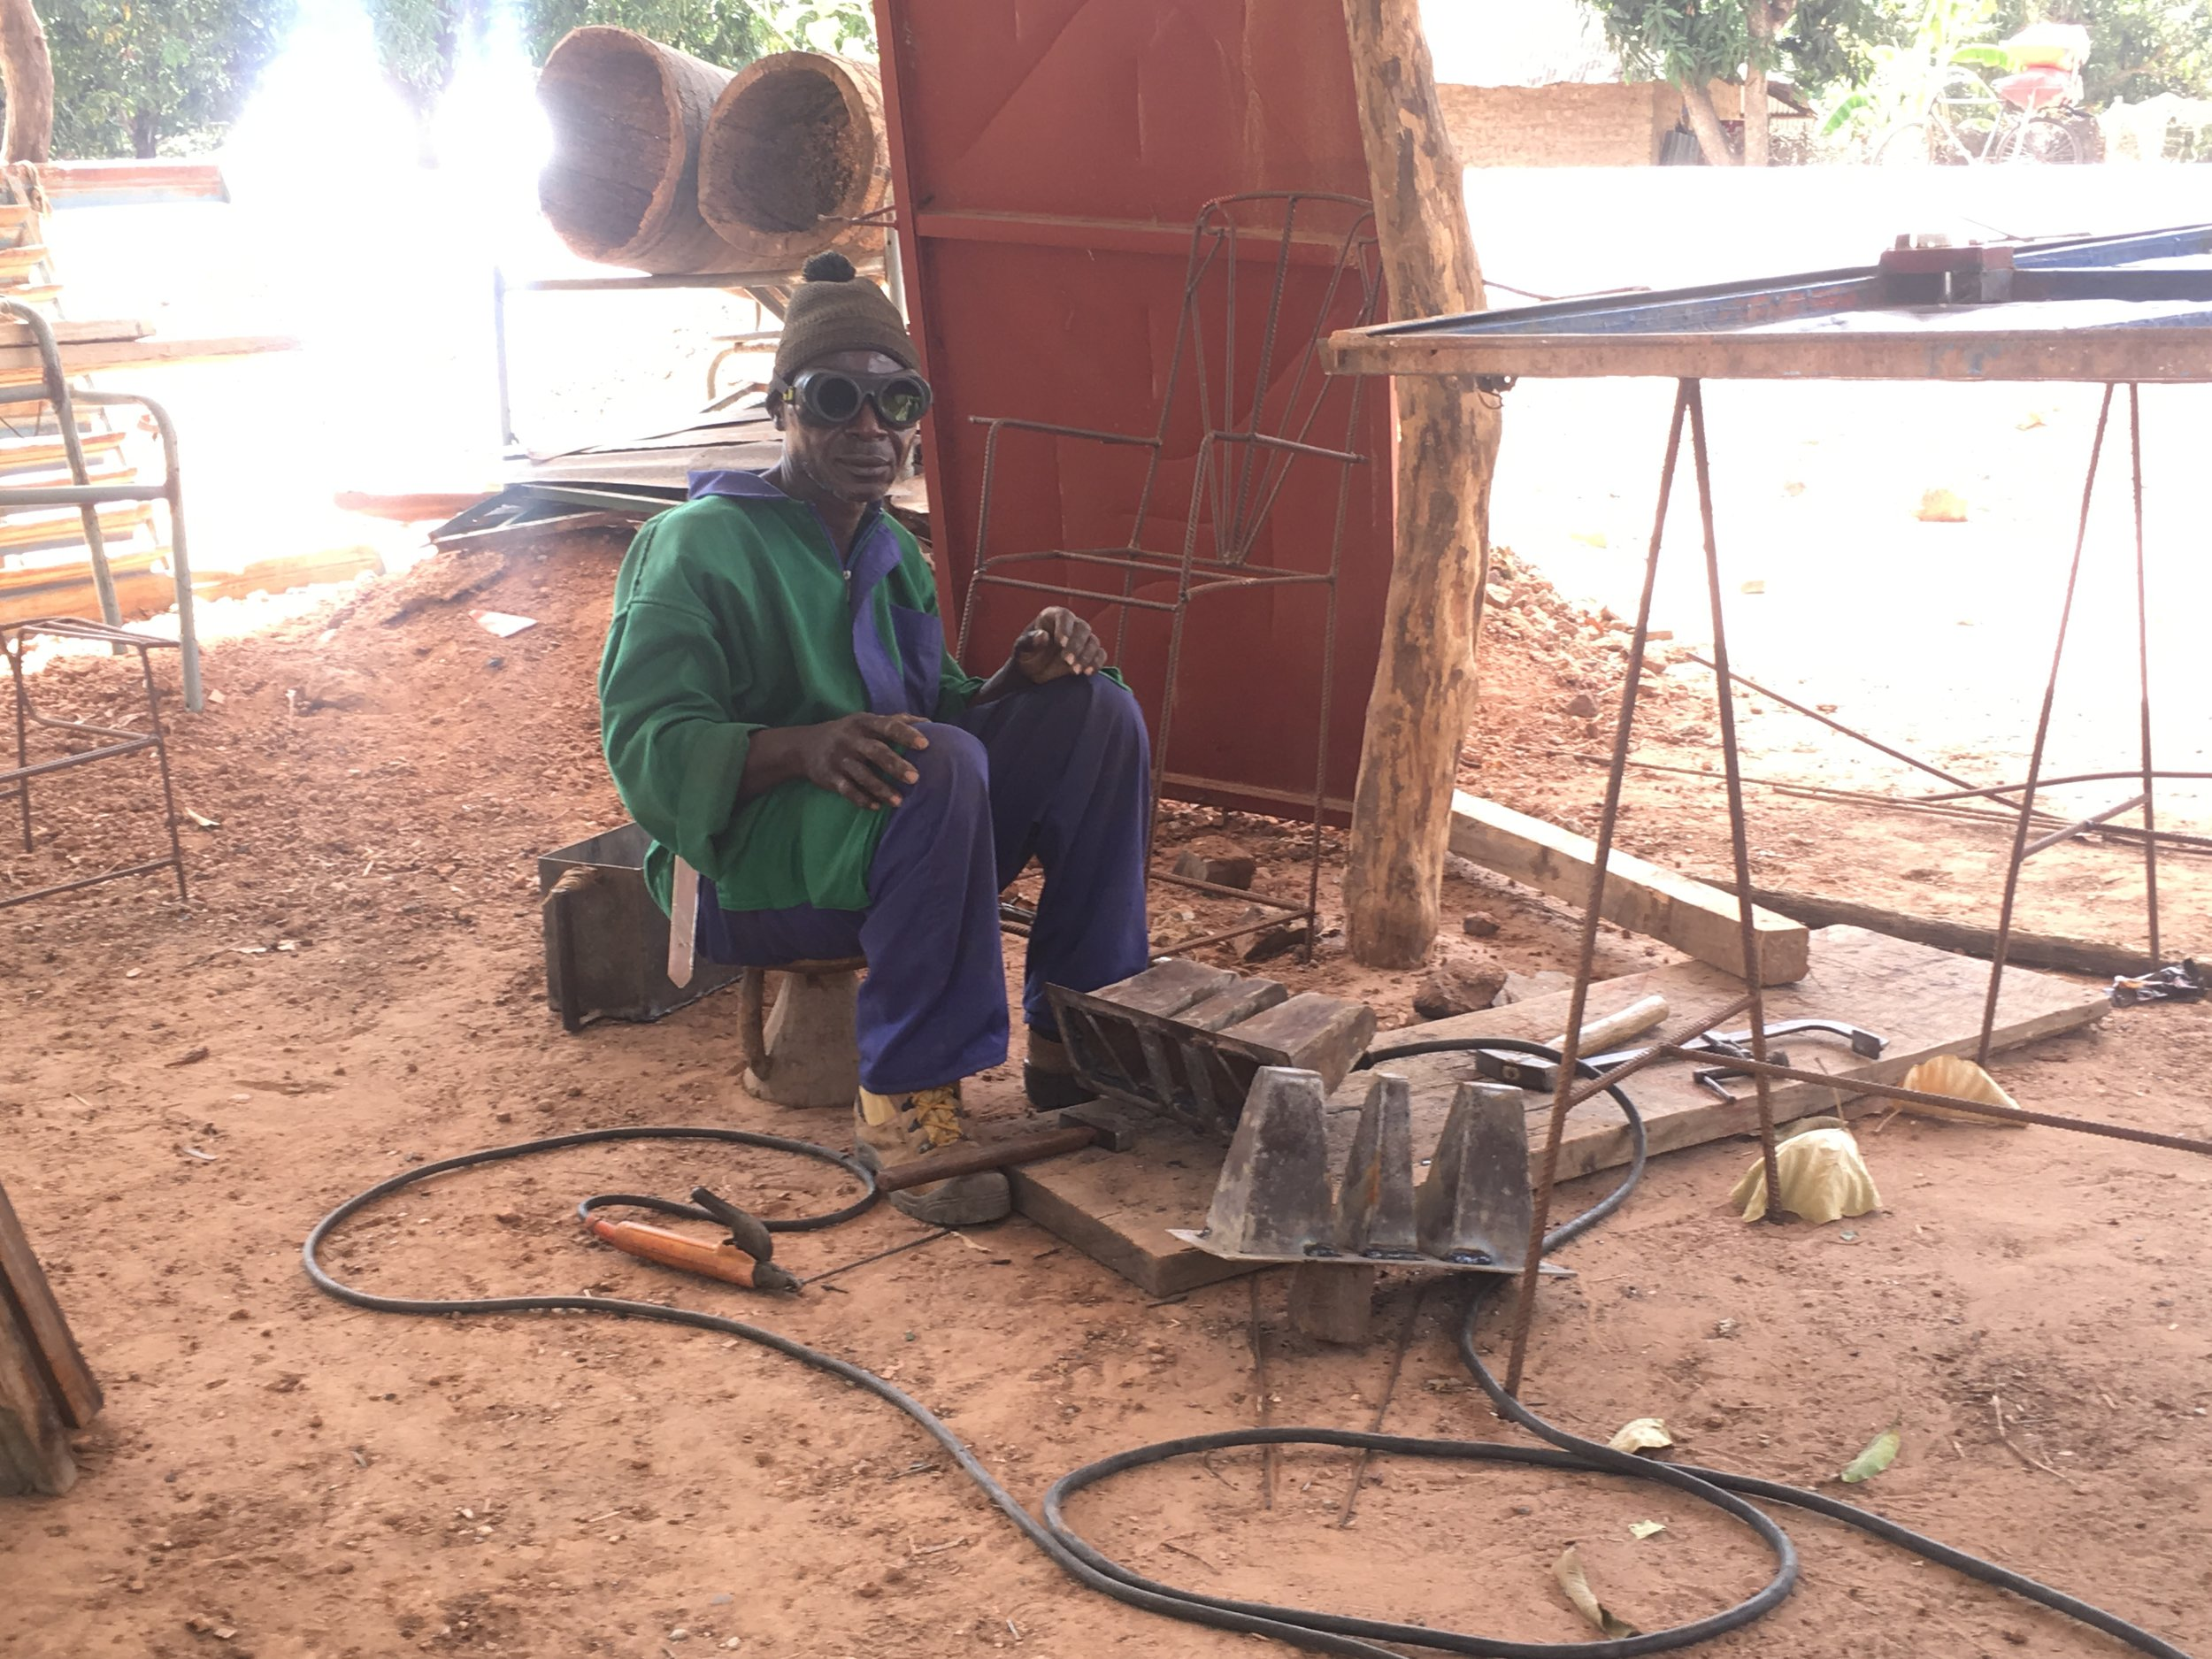 This man is soldering a mold to make cinderblocks, the building material of choice for many Senegalese buildings.